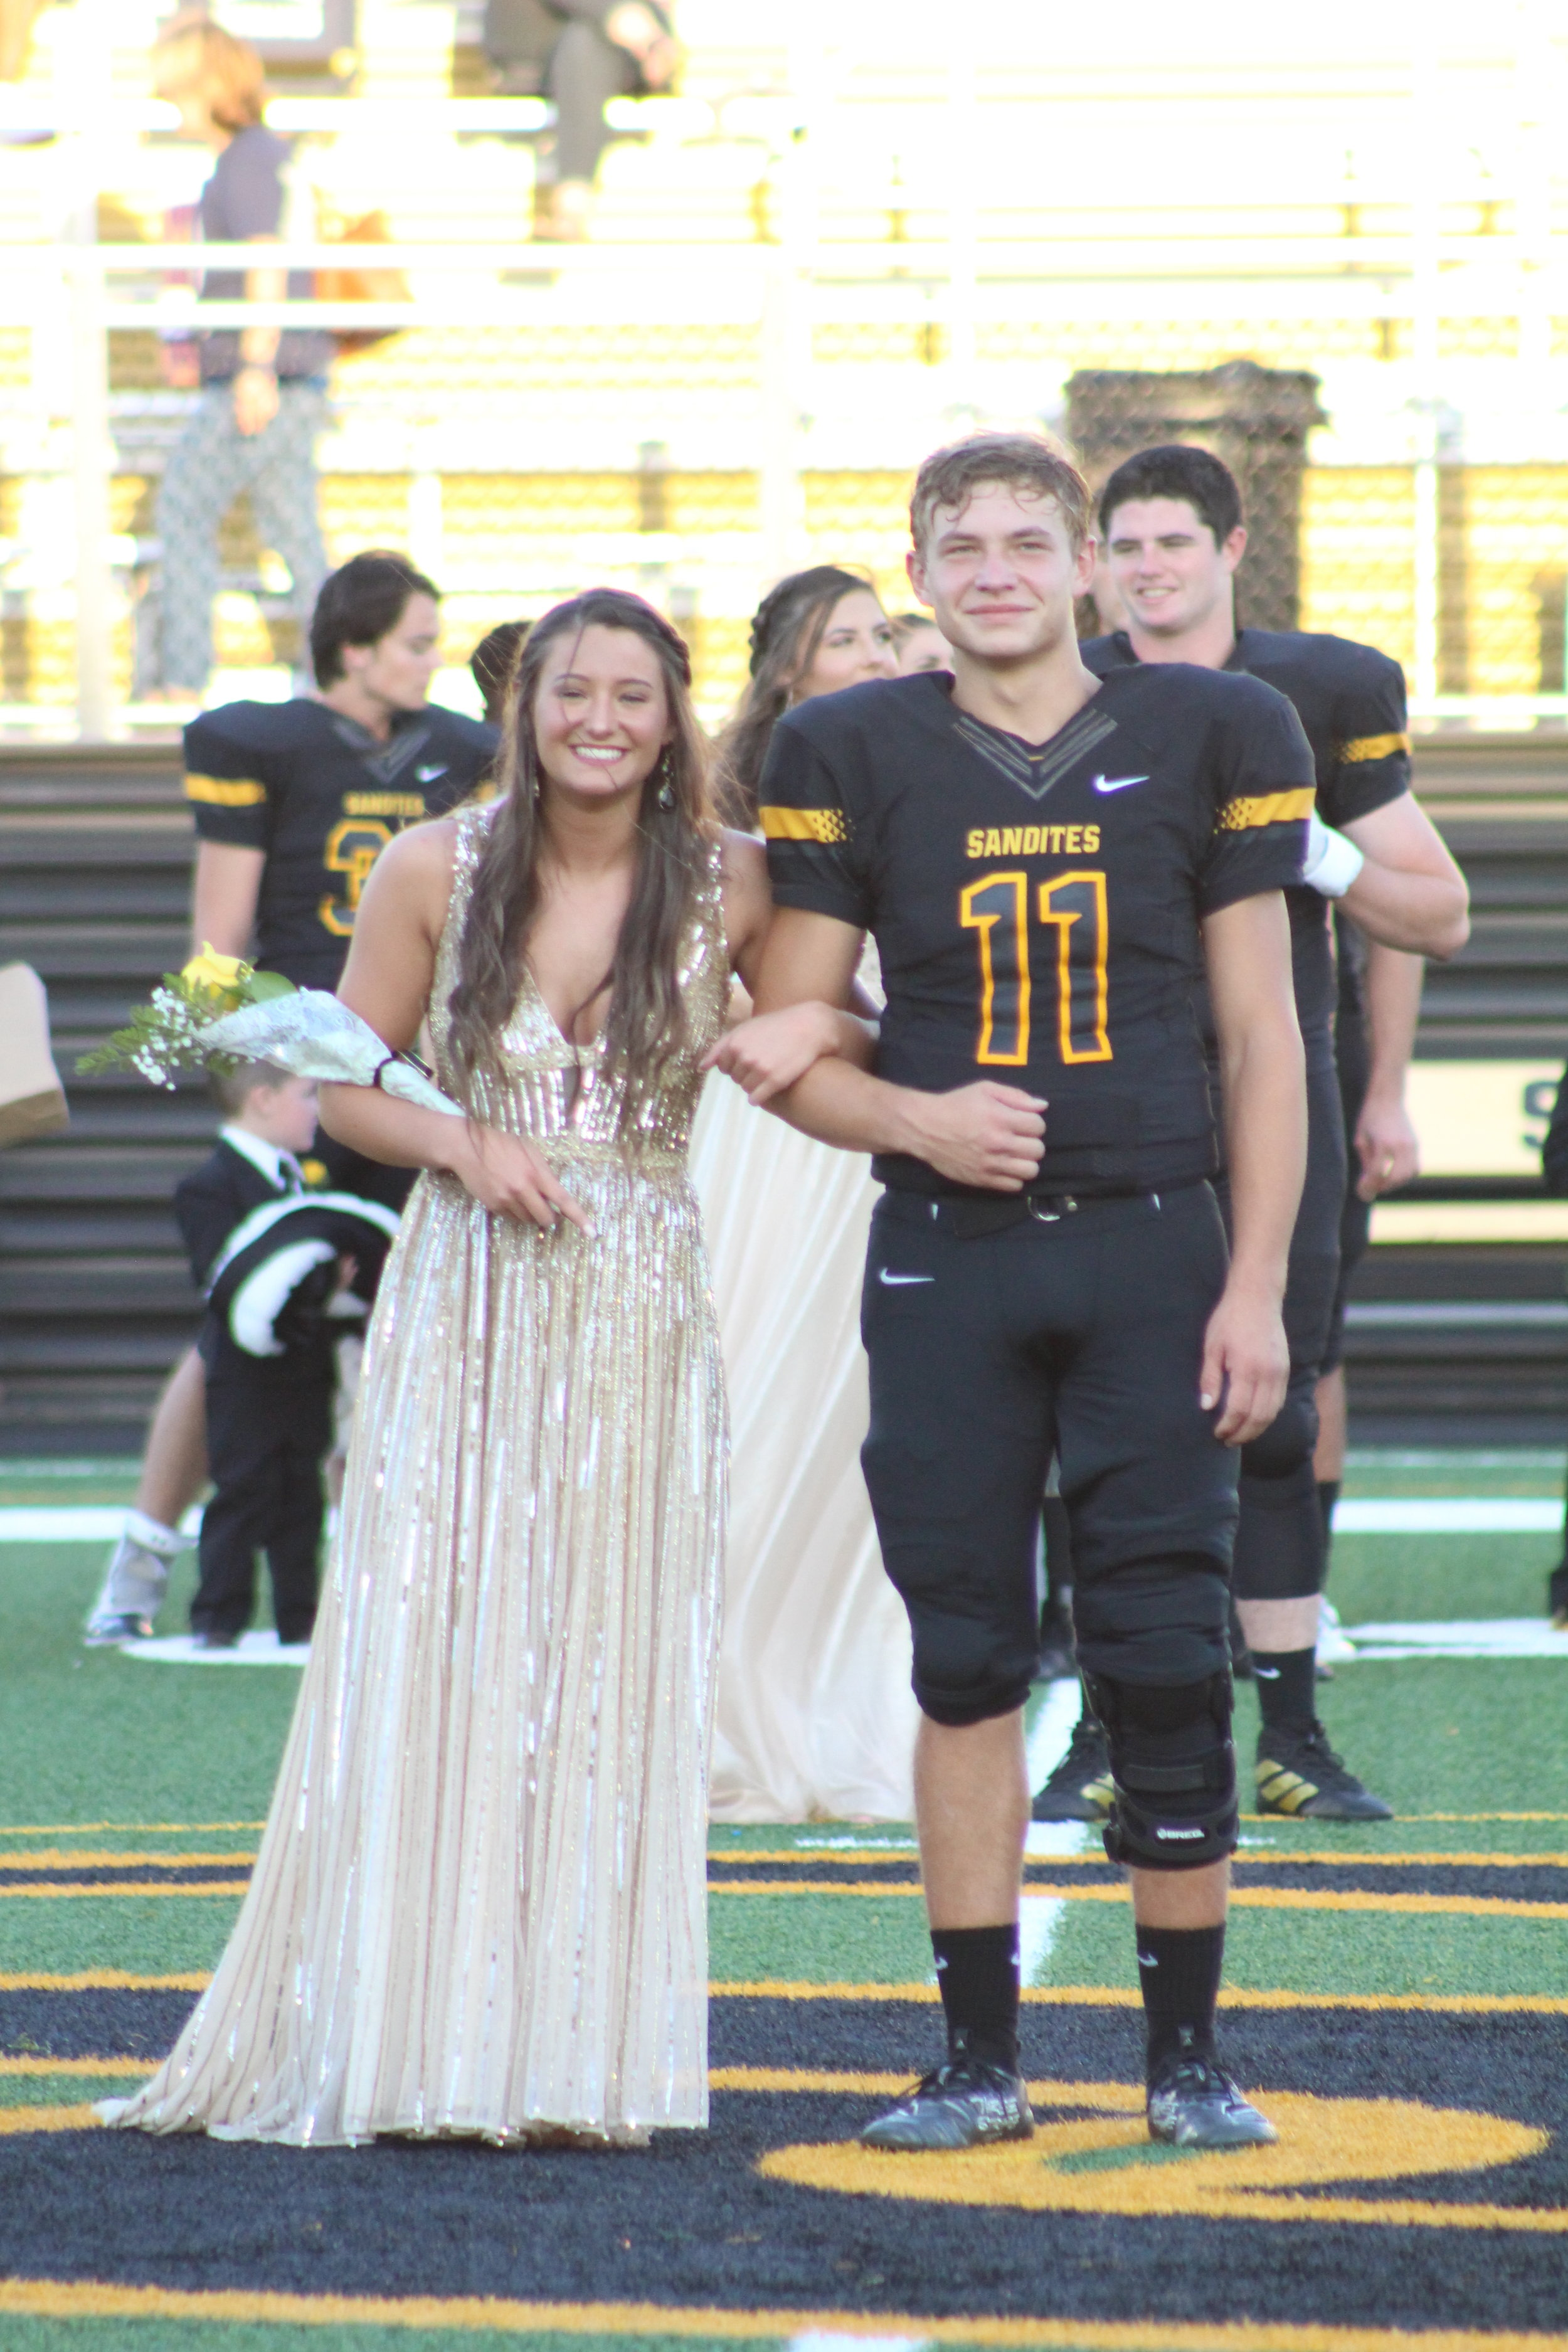 Raegan Foster, escorted by Braden Foster. Raegan is the daughter of Alan and Lisa Foster, and has been on the varsity Dance Team for two years. Braden is the son of Evan and Amanda Foster and is a three-year varsity quarterback and wide receiver.